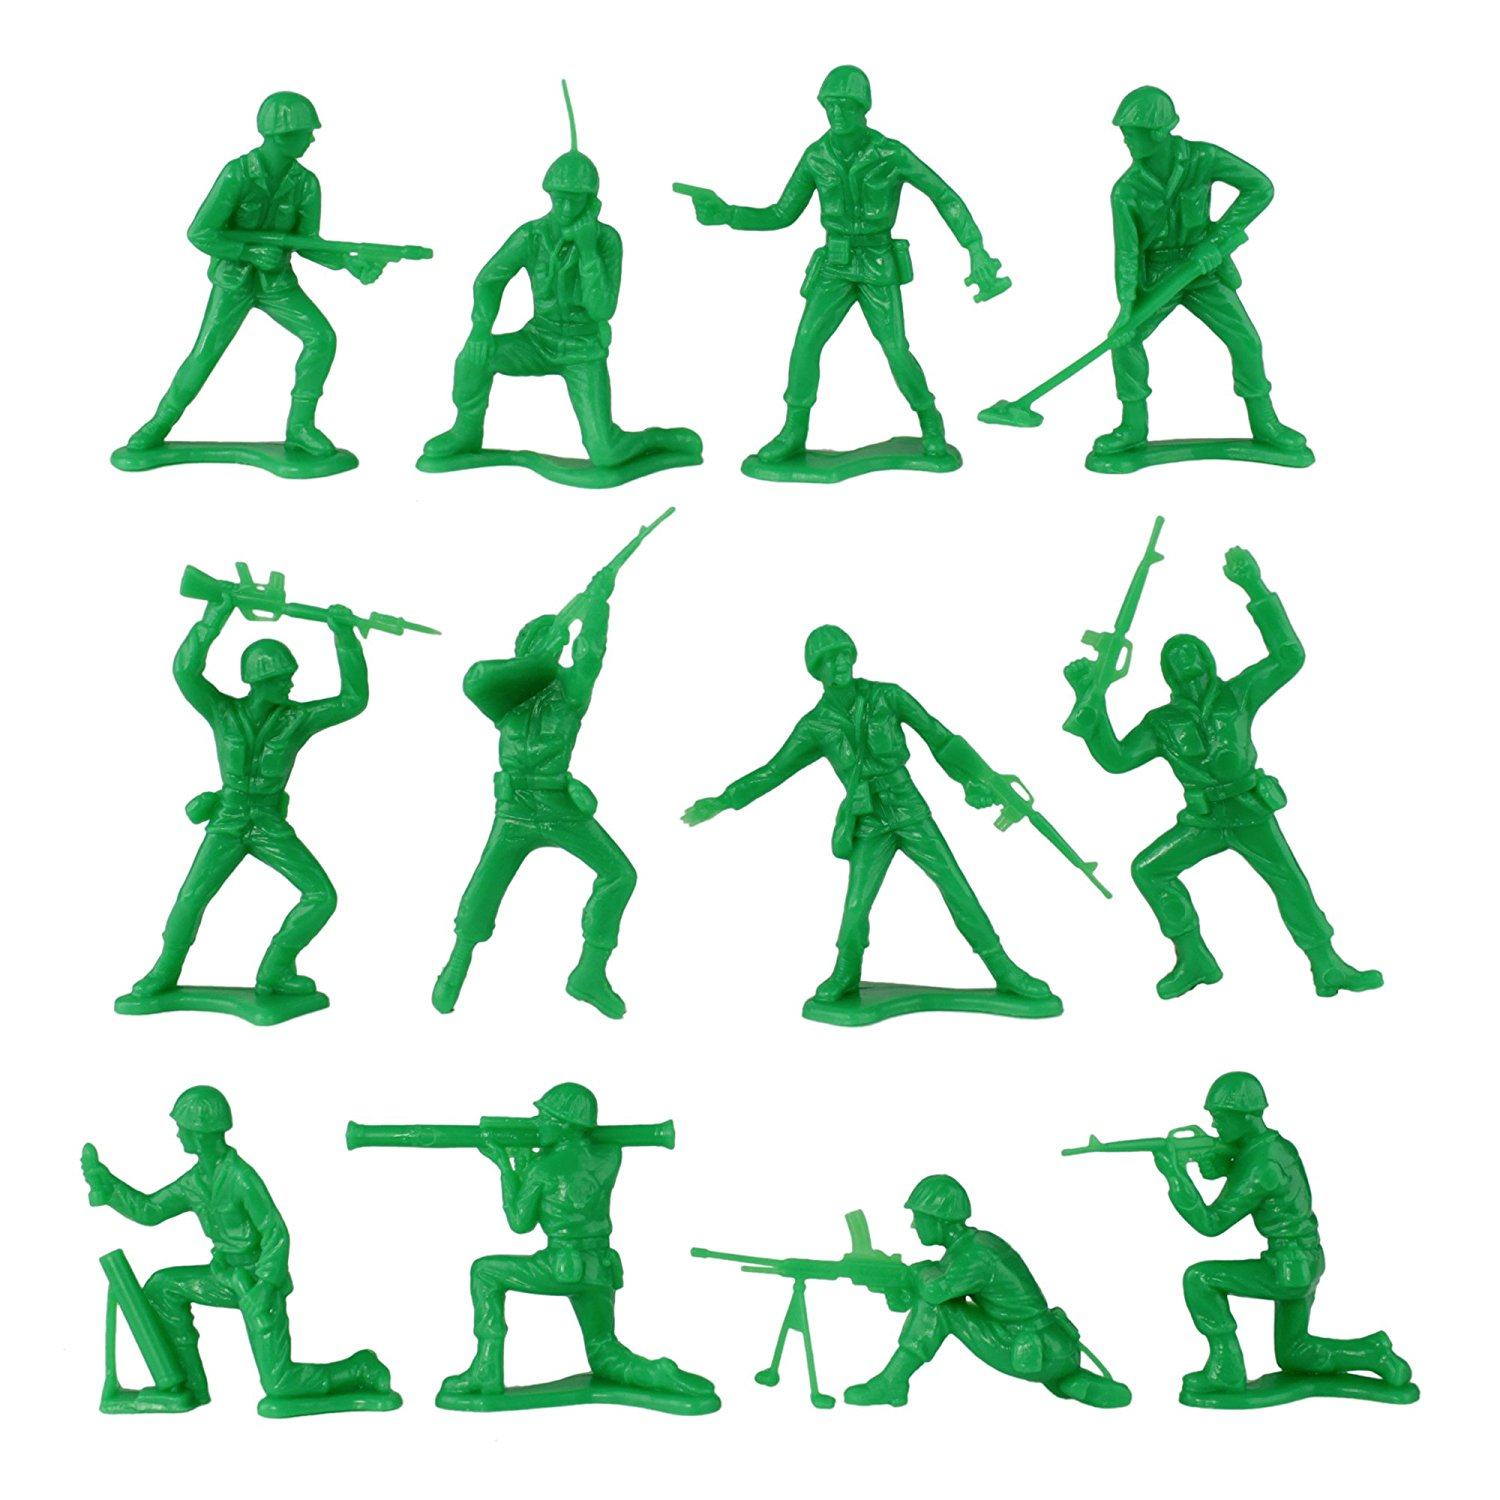 hight resolution of toy soldier silhouette at getdrawings com free for personal use